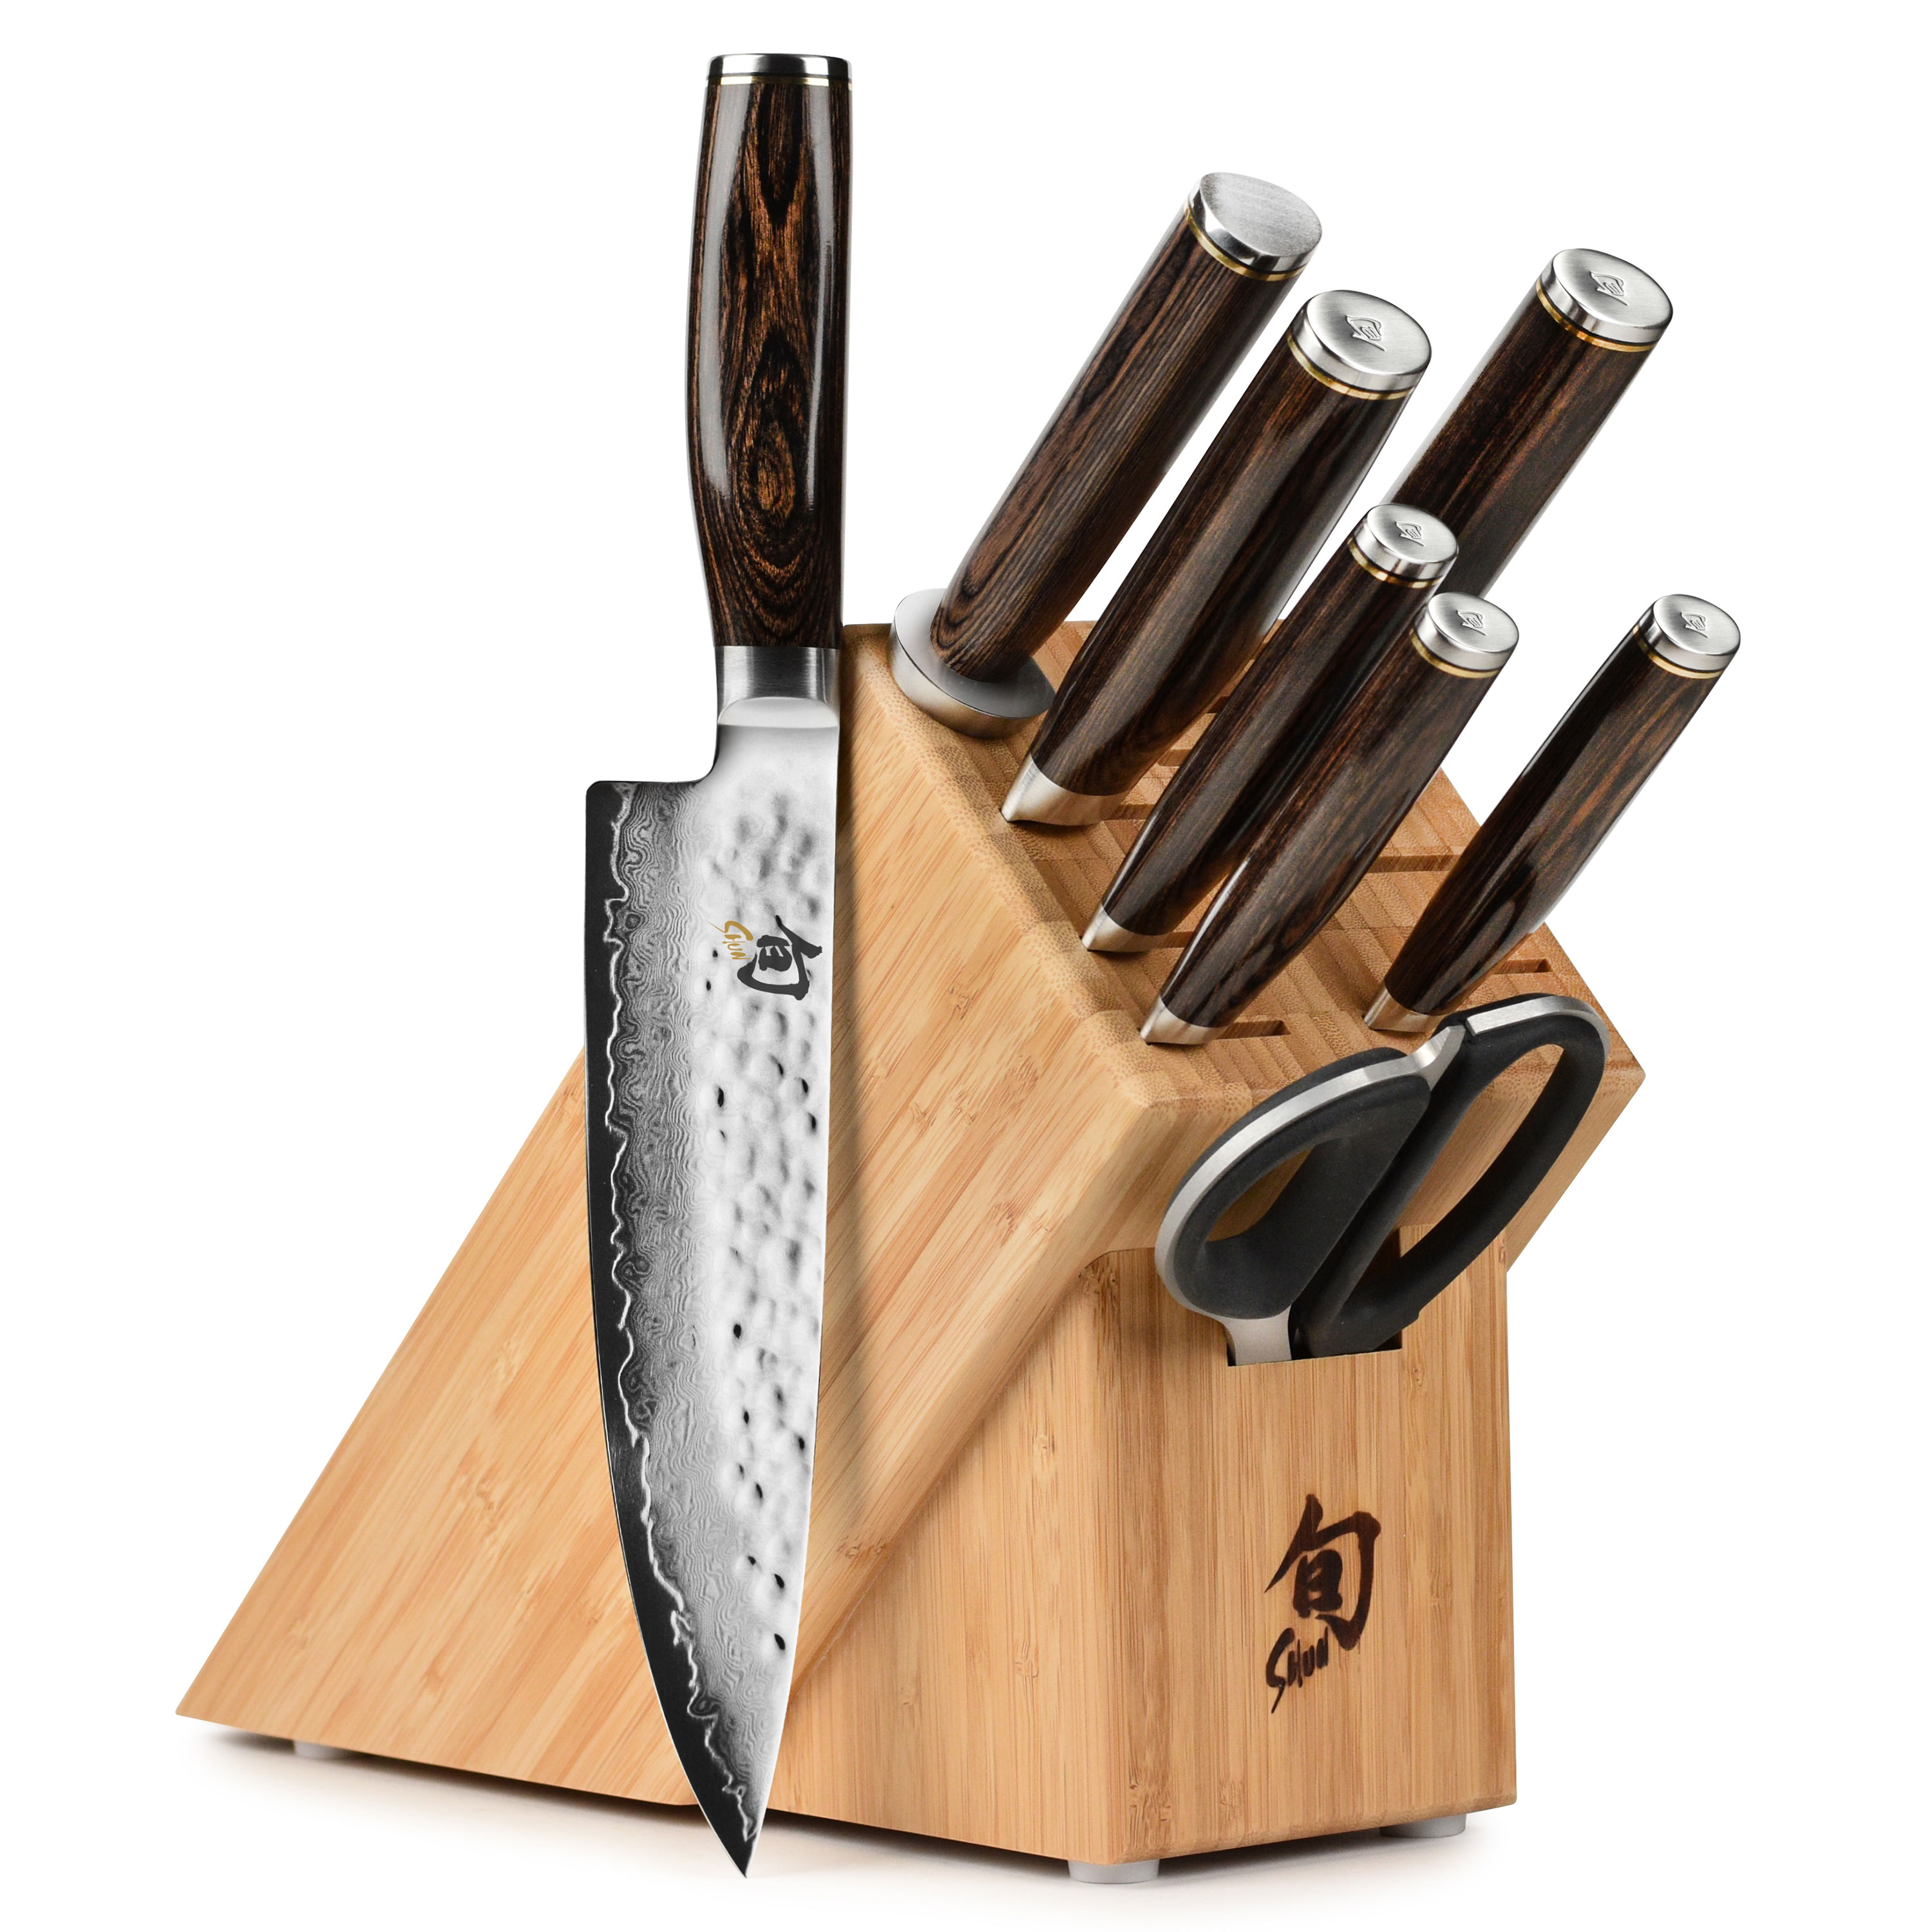 Shun Premier Knife Set 9 Piece With Block Cutlery And More